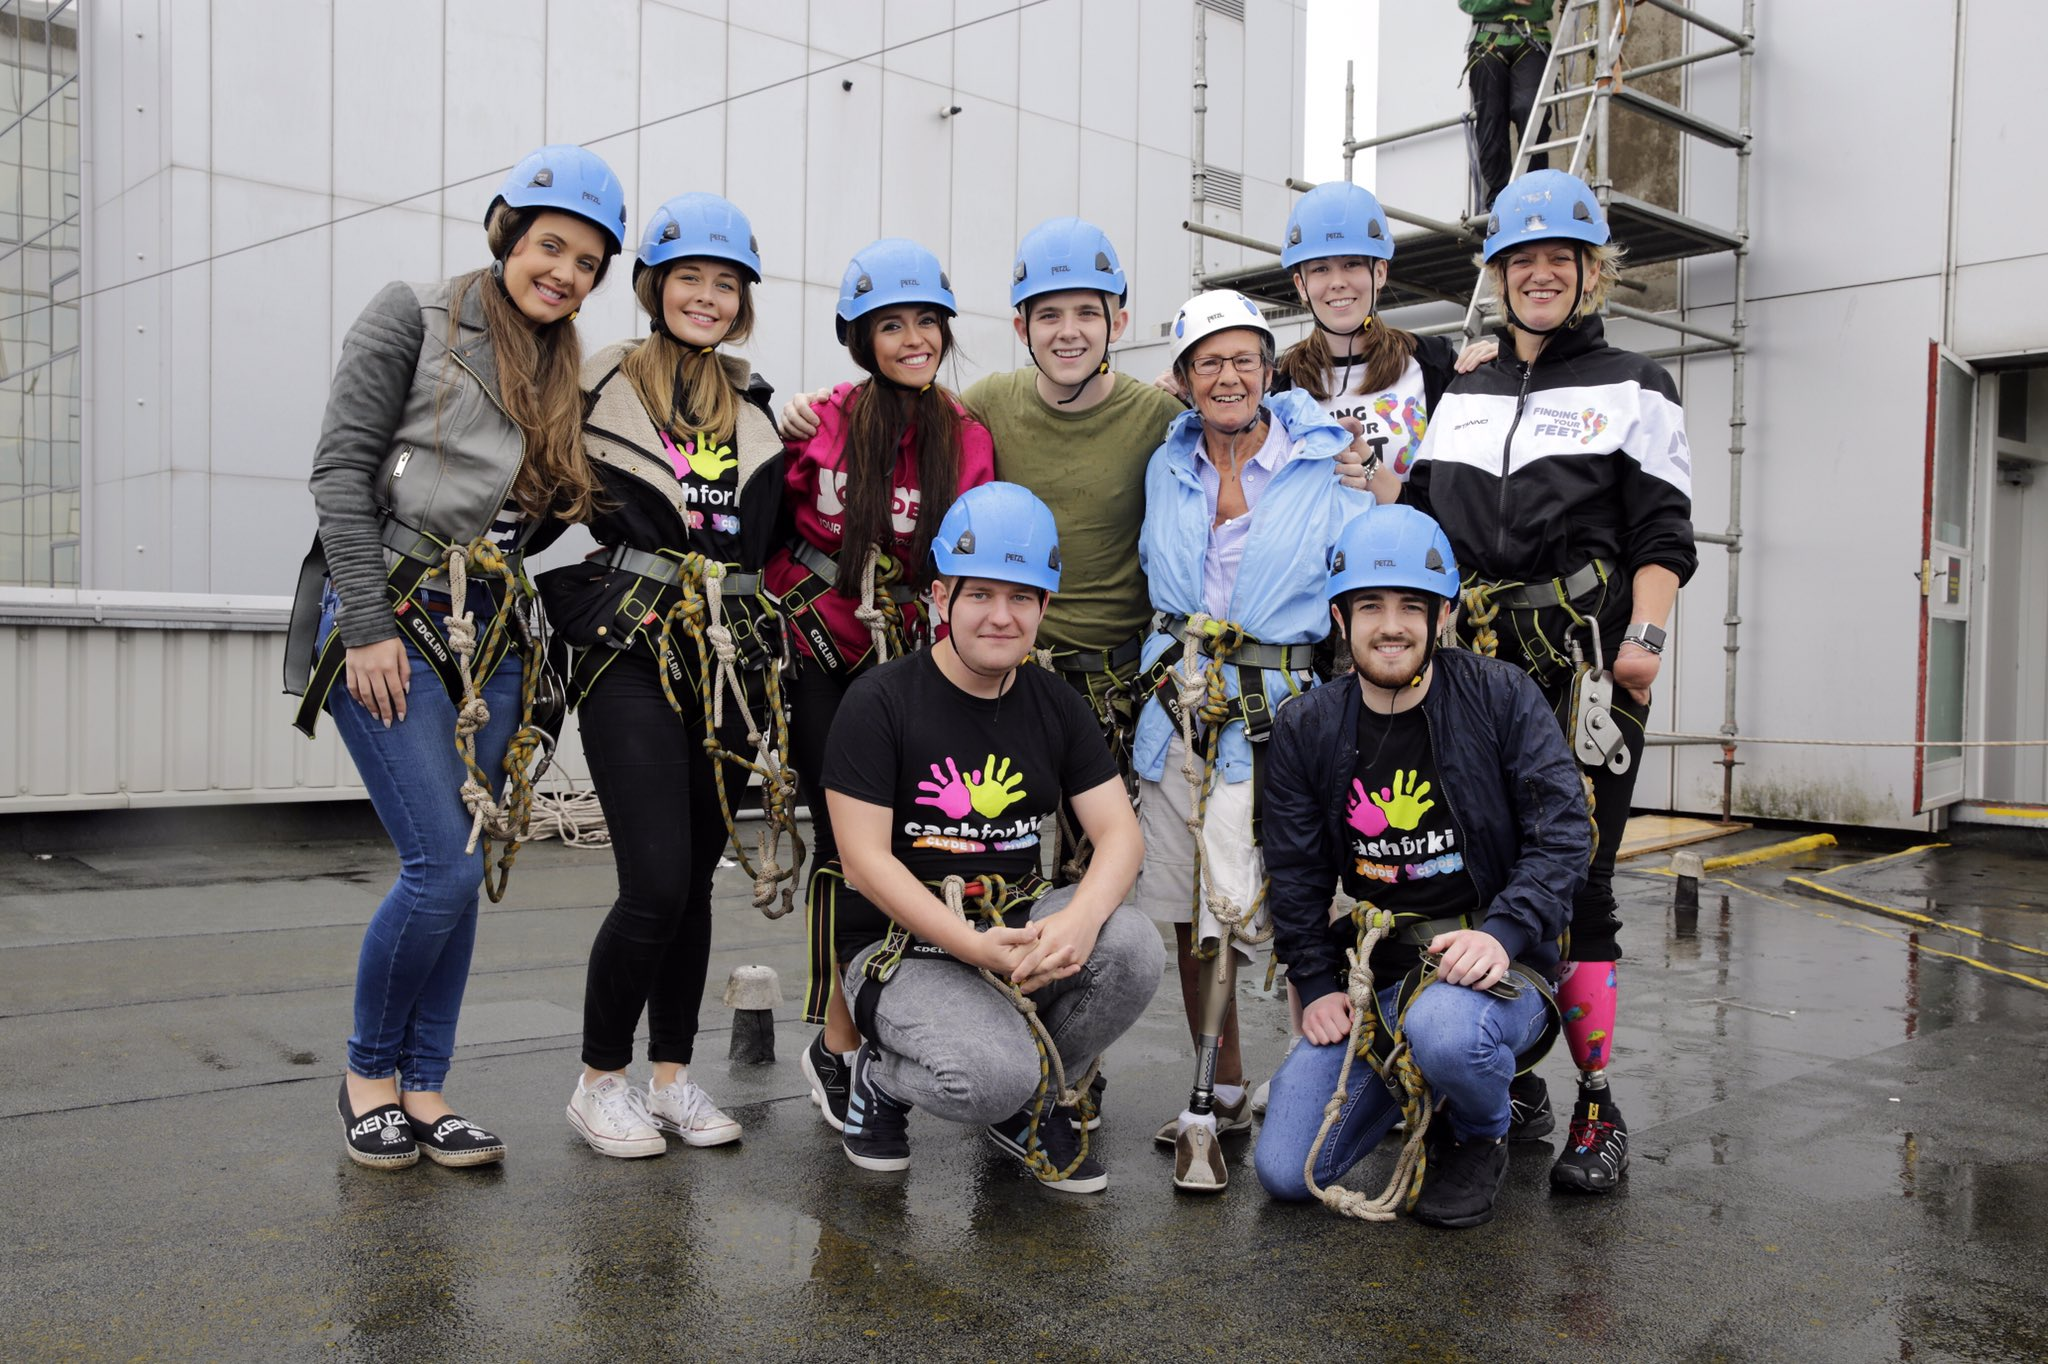 Had a great time on Friday supporting @clydecashforkid & @FYF_Charity at the charity zip slide! https://t.co/Afsemv2MRk